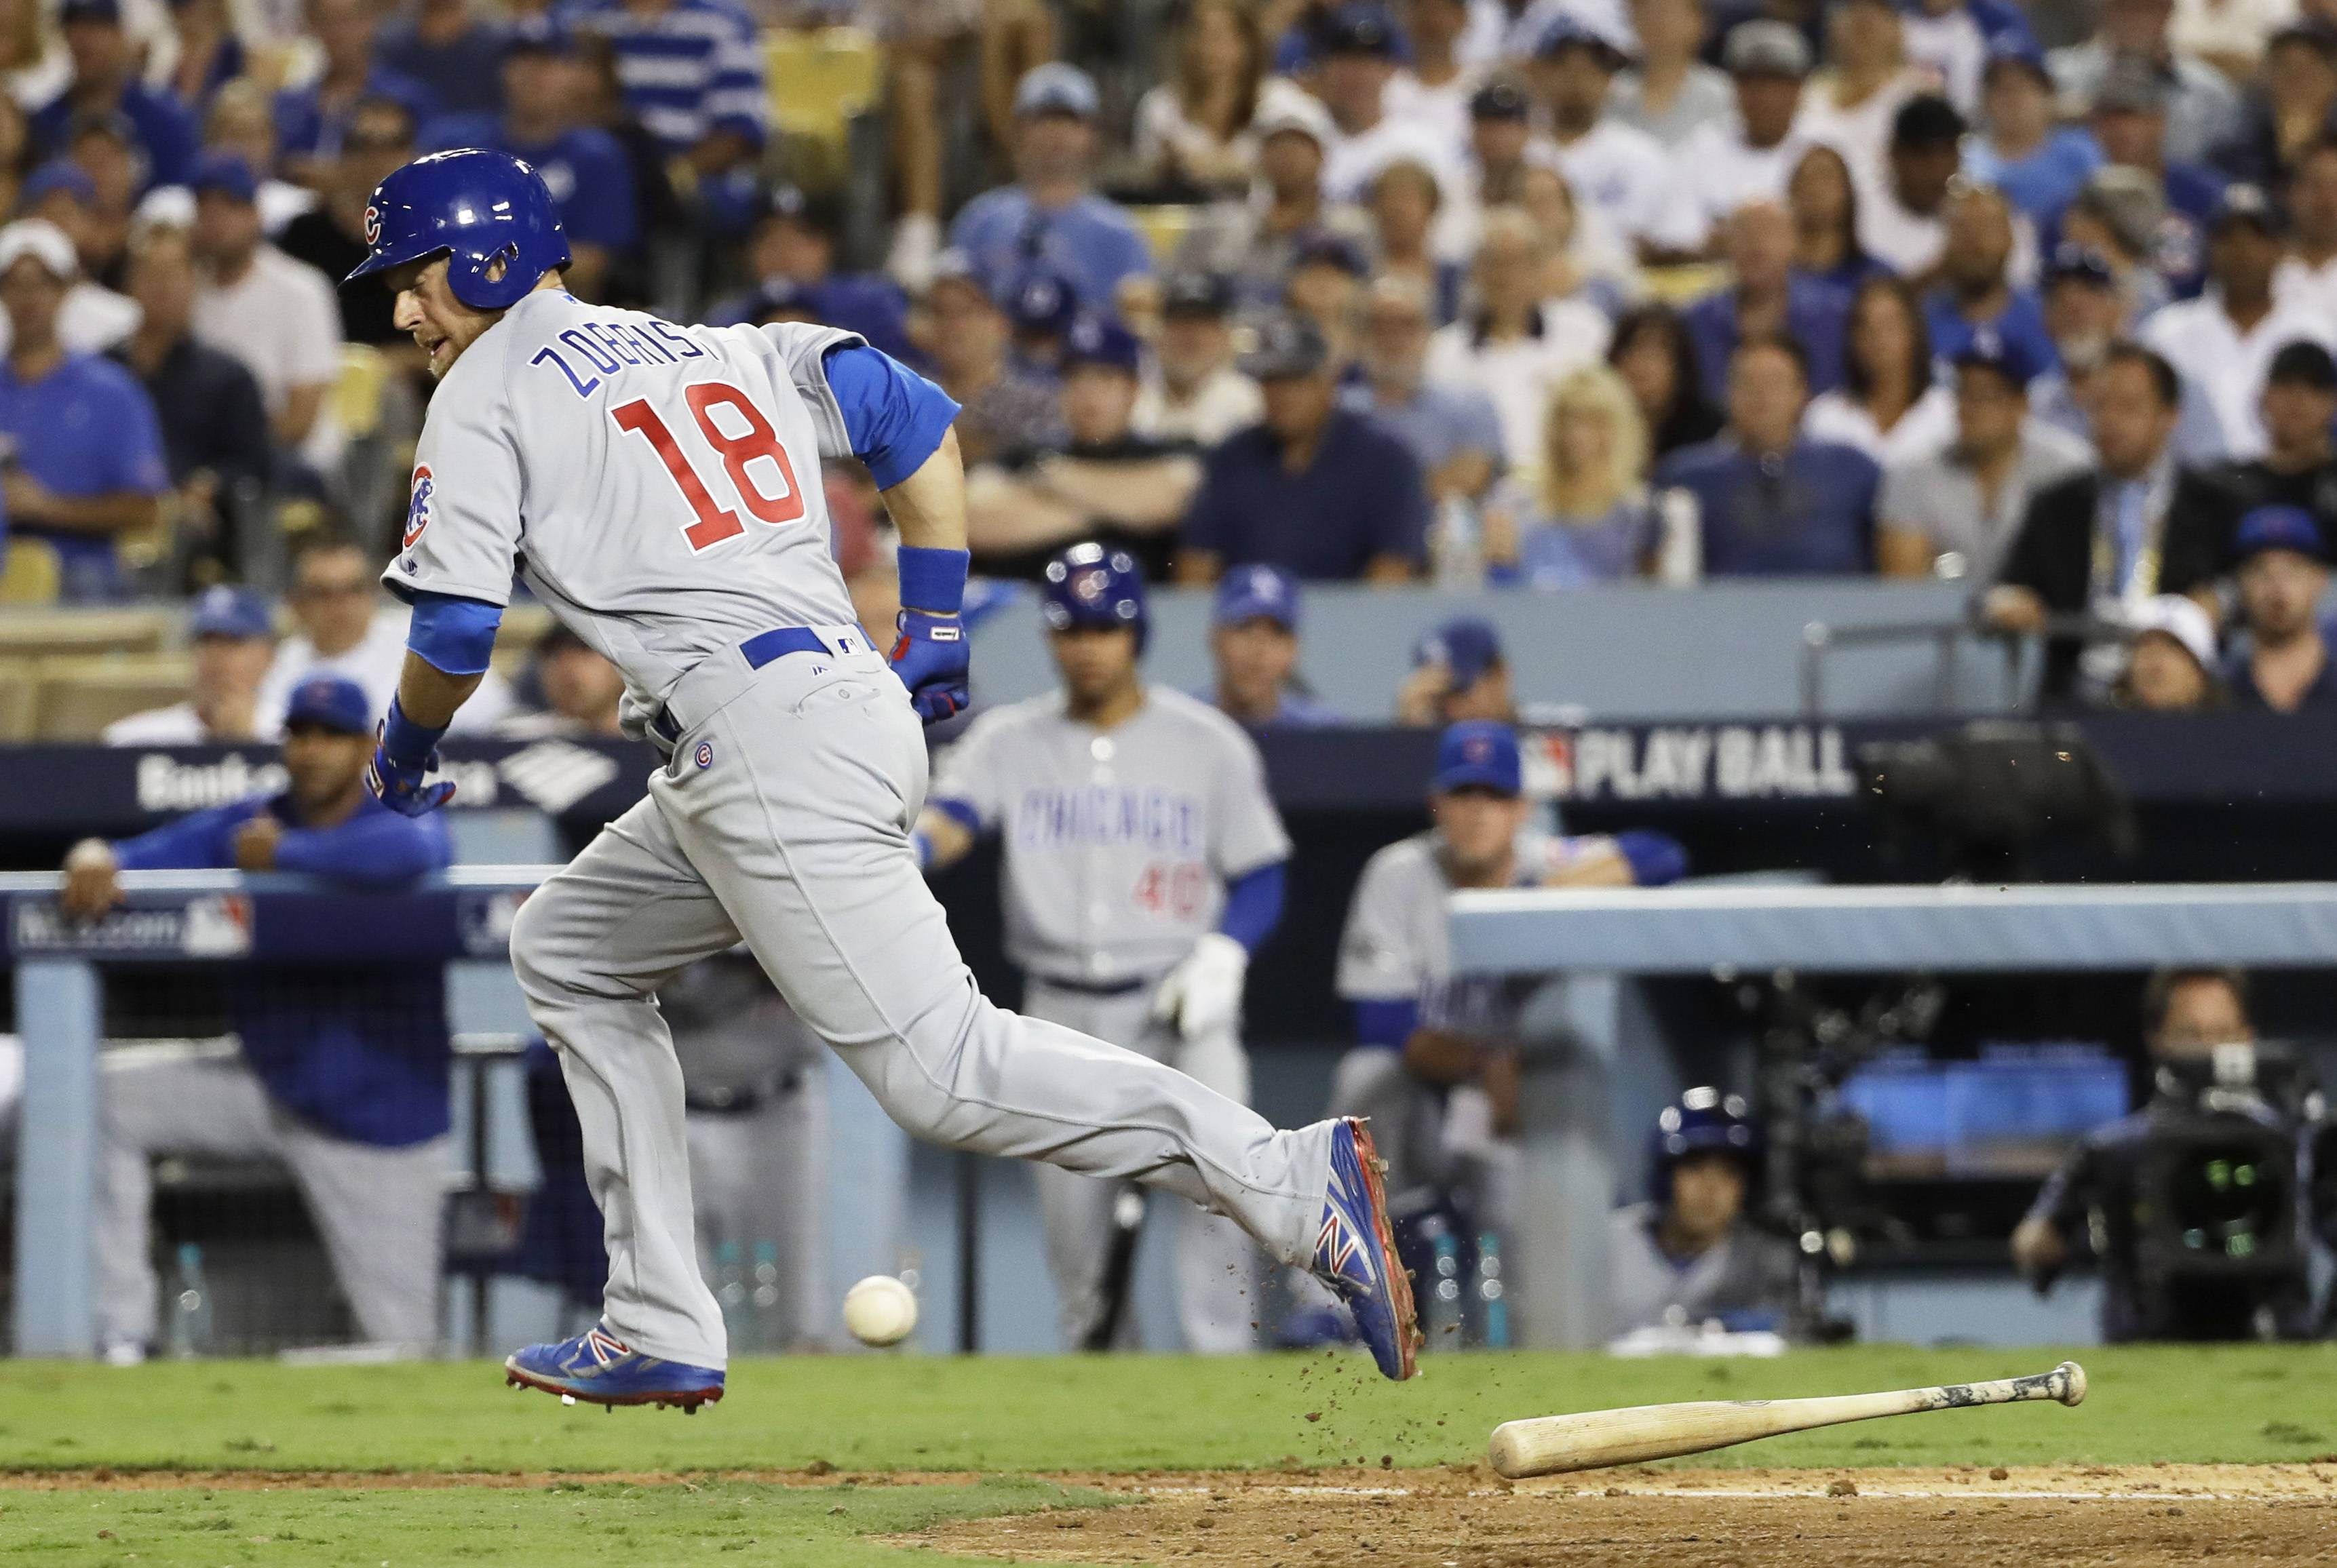 Ben Zobrist's bunt in the fourth inning on Wednesday sparked a 4-run Chicago Cubs rally, which climaxed with a 2-run homer over the right-center field fence by the struggling Addison Russell.